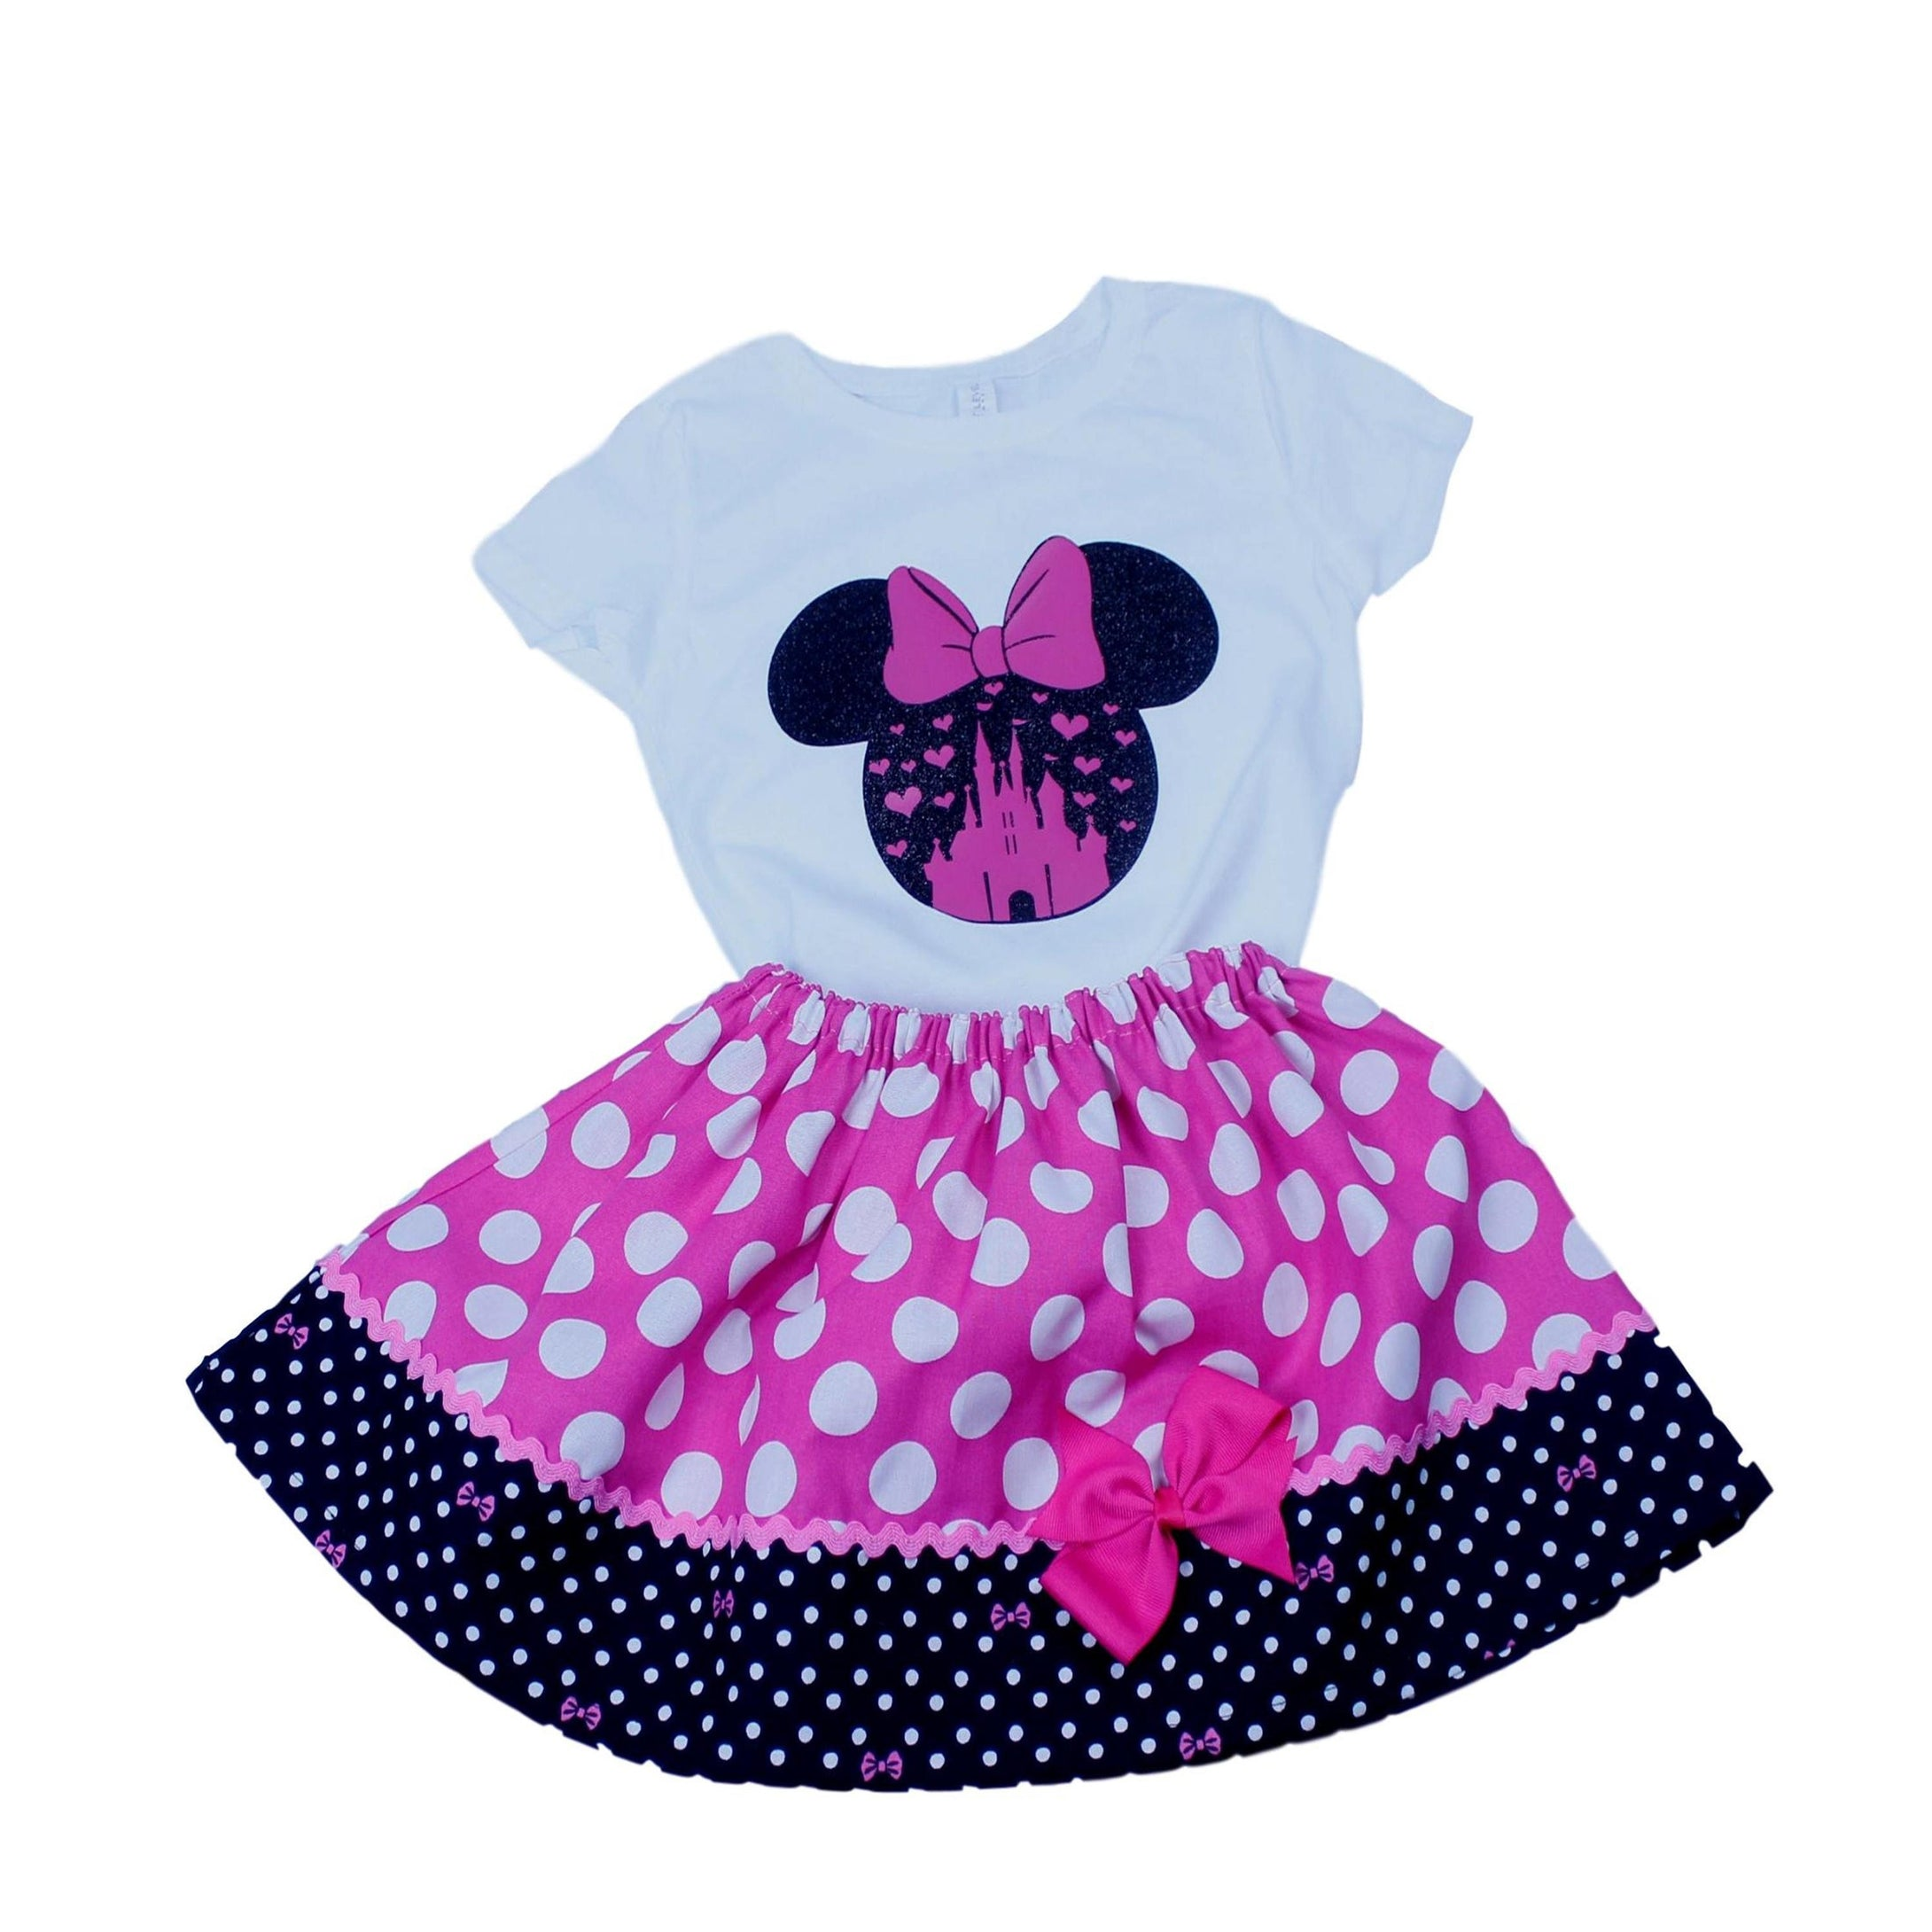 Minnie Mouse birthday outfit Minnie baby dress. Toddler  Minnie outfit Minnie shirt skirt First trip to Disney outfit